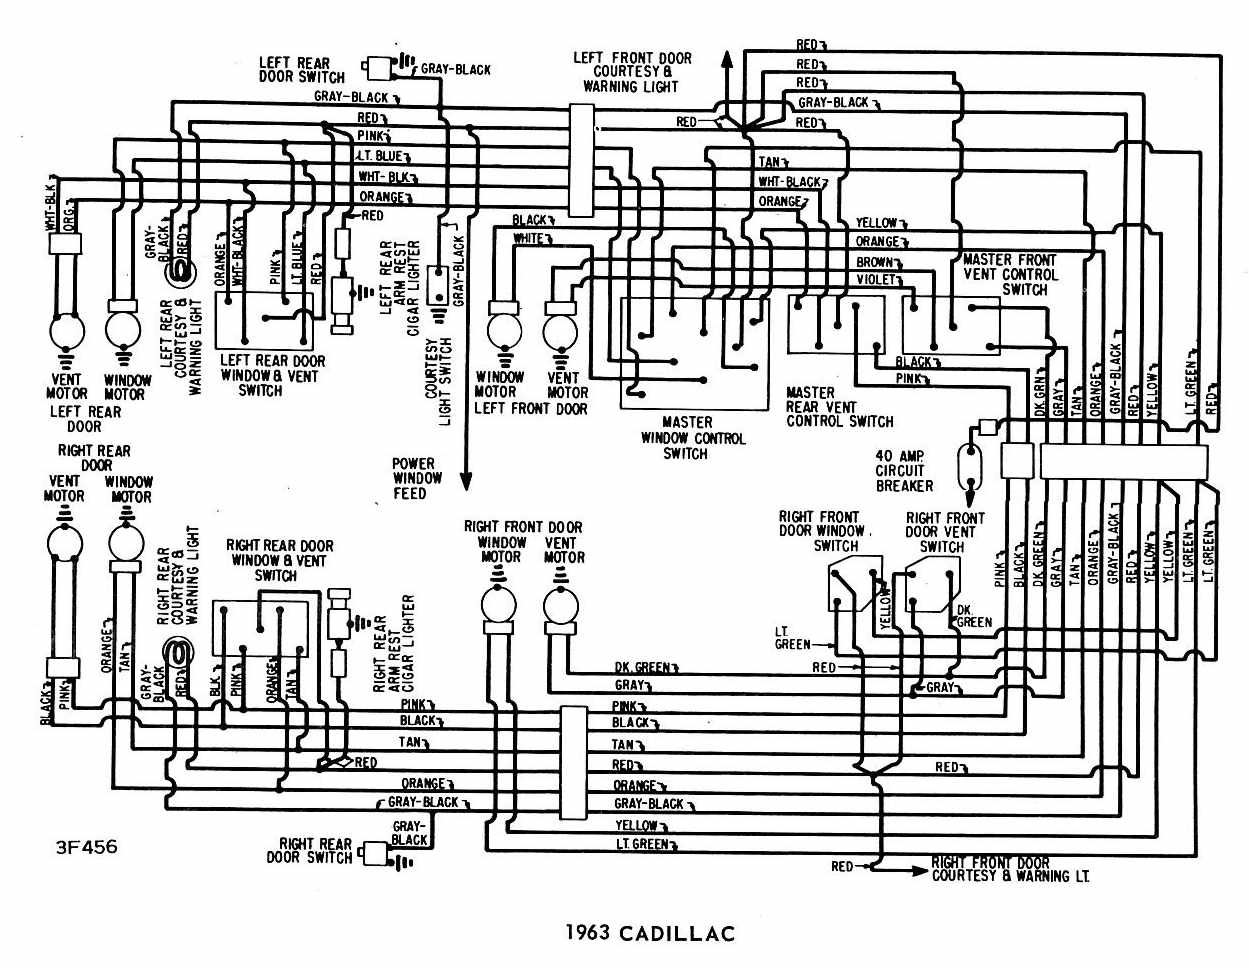 Cadillac+1963+Windows+Wiring+Diagram cadillac 1963 windows wiring diagram all about wiring diagrams 1953 chevy bel air wiring diagram at suagrazia.org